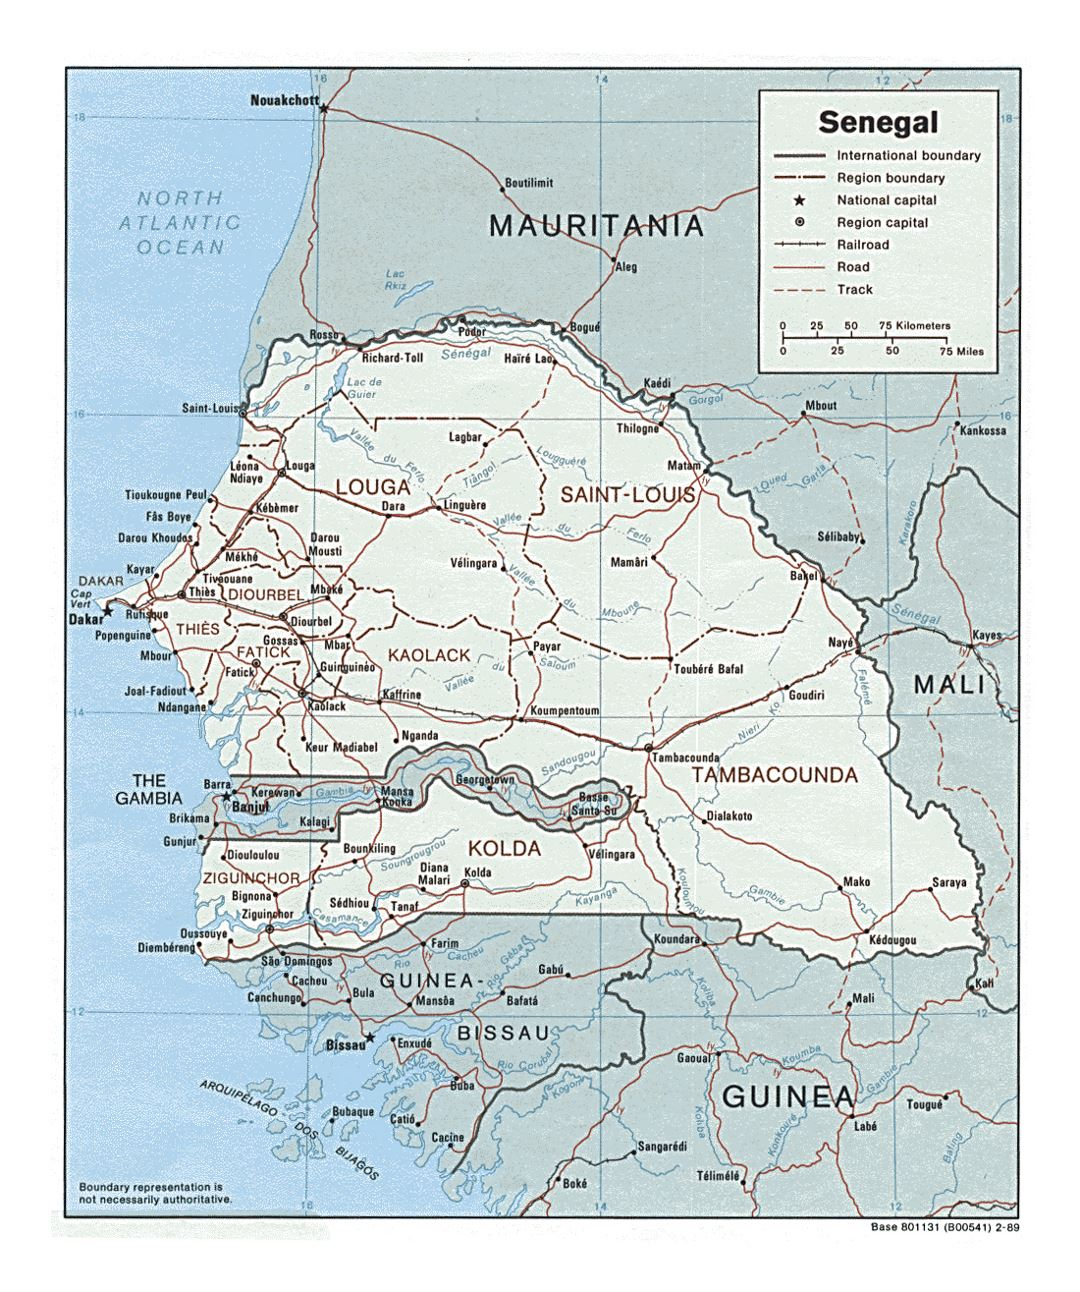 Detailed political and administrative map of Senegal with roads, railroads and major cities - 1989